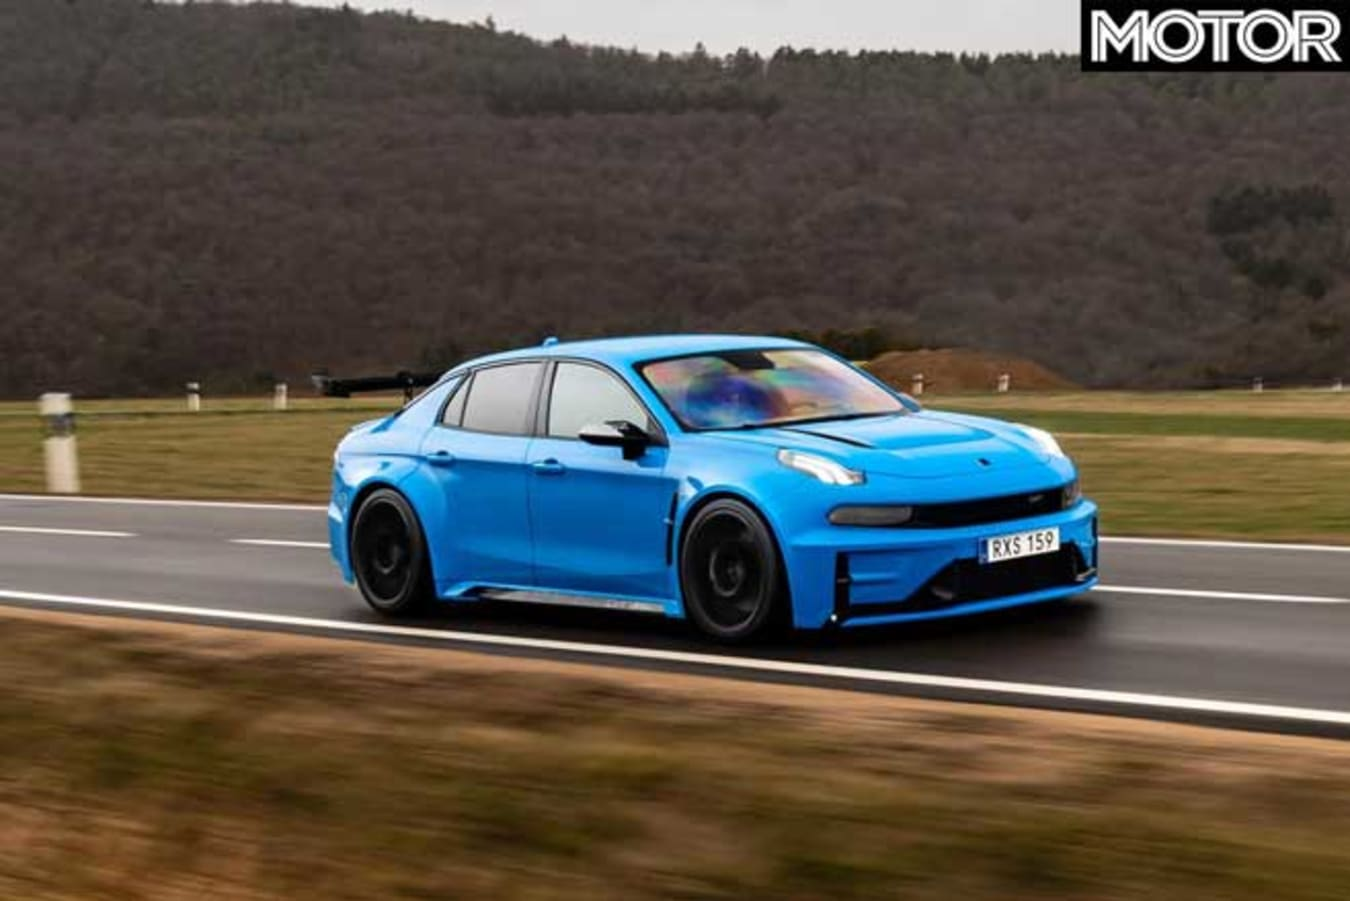 Lynk Co 03 Cyan Concept FWD Nurburgring Record Road Jpg